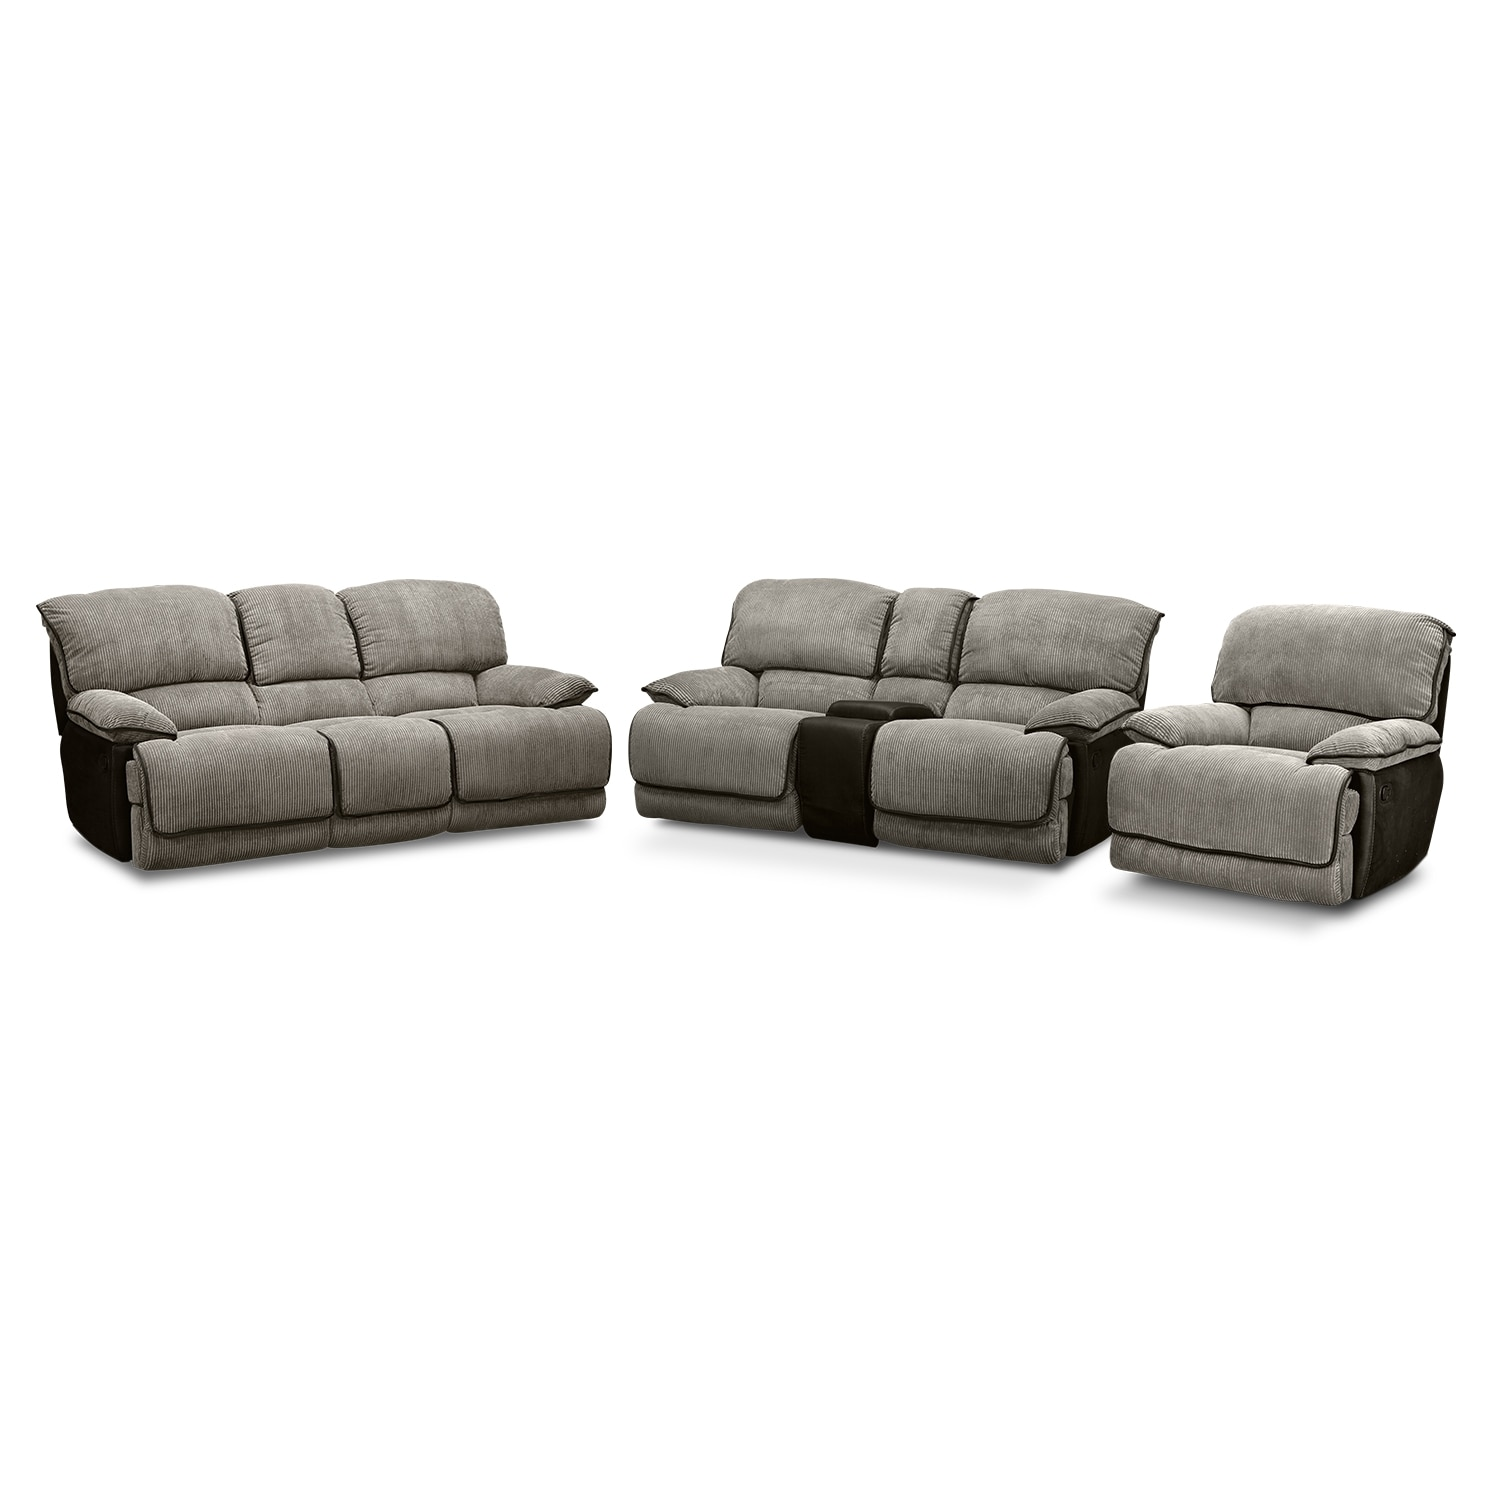 Hover to zoom  sc 1 st  Value City Furniture & Laguna Reclining Sofa Gliding Reclining Loveseat and Glider ... islam-shia.org